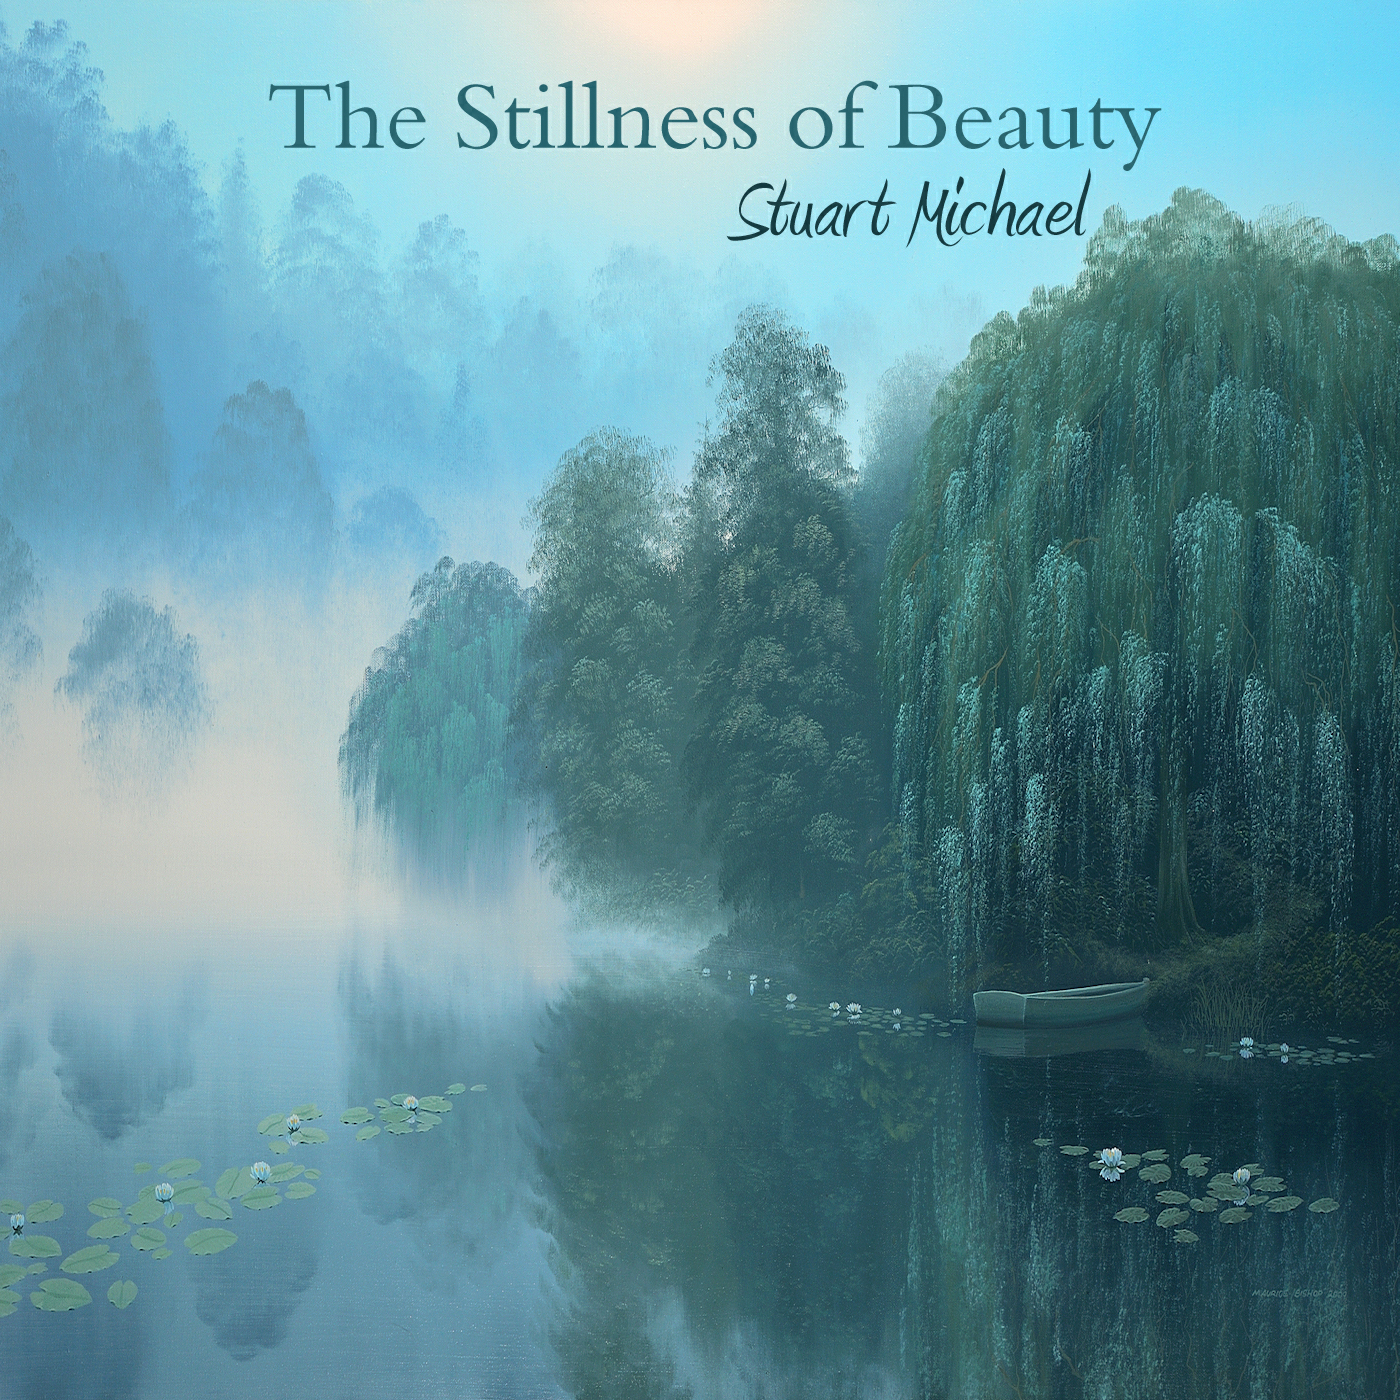 The Stillness of Beauty by Stuart Michael